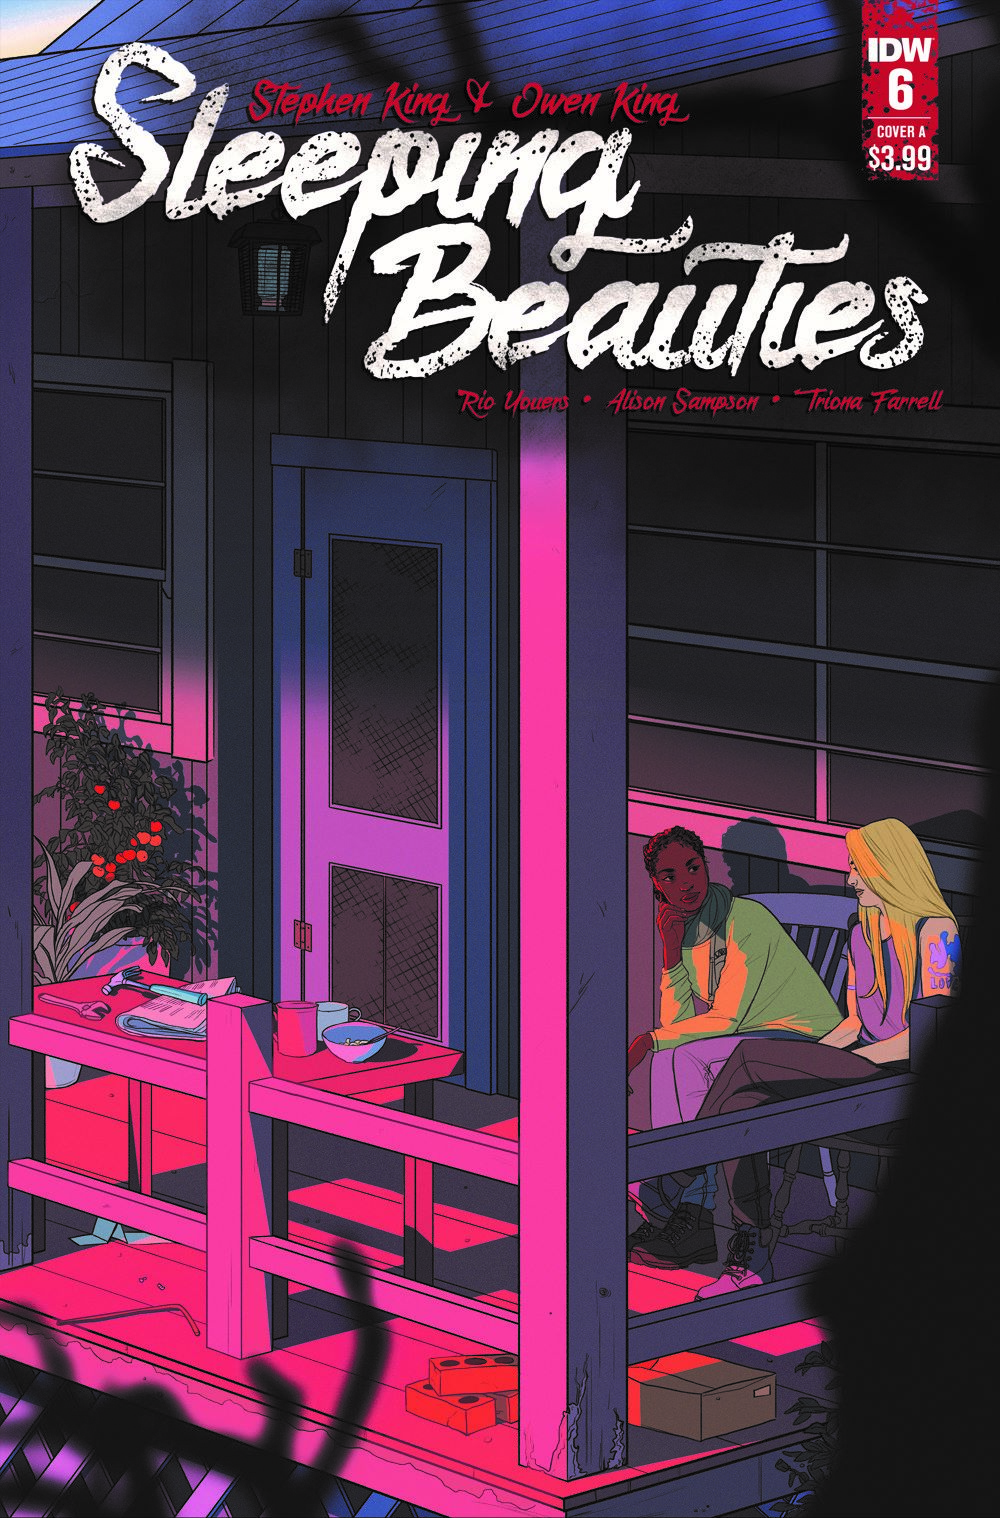 SleepingBeauties_06_CVR_A-2 ComicList: IDW Publishing New Releases for 05/19/2021